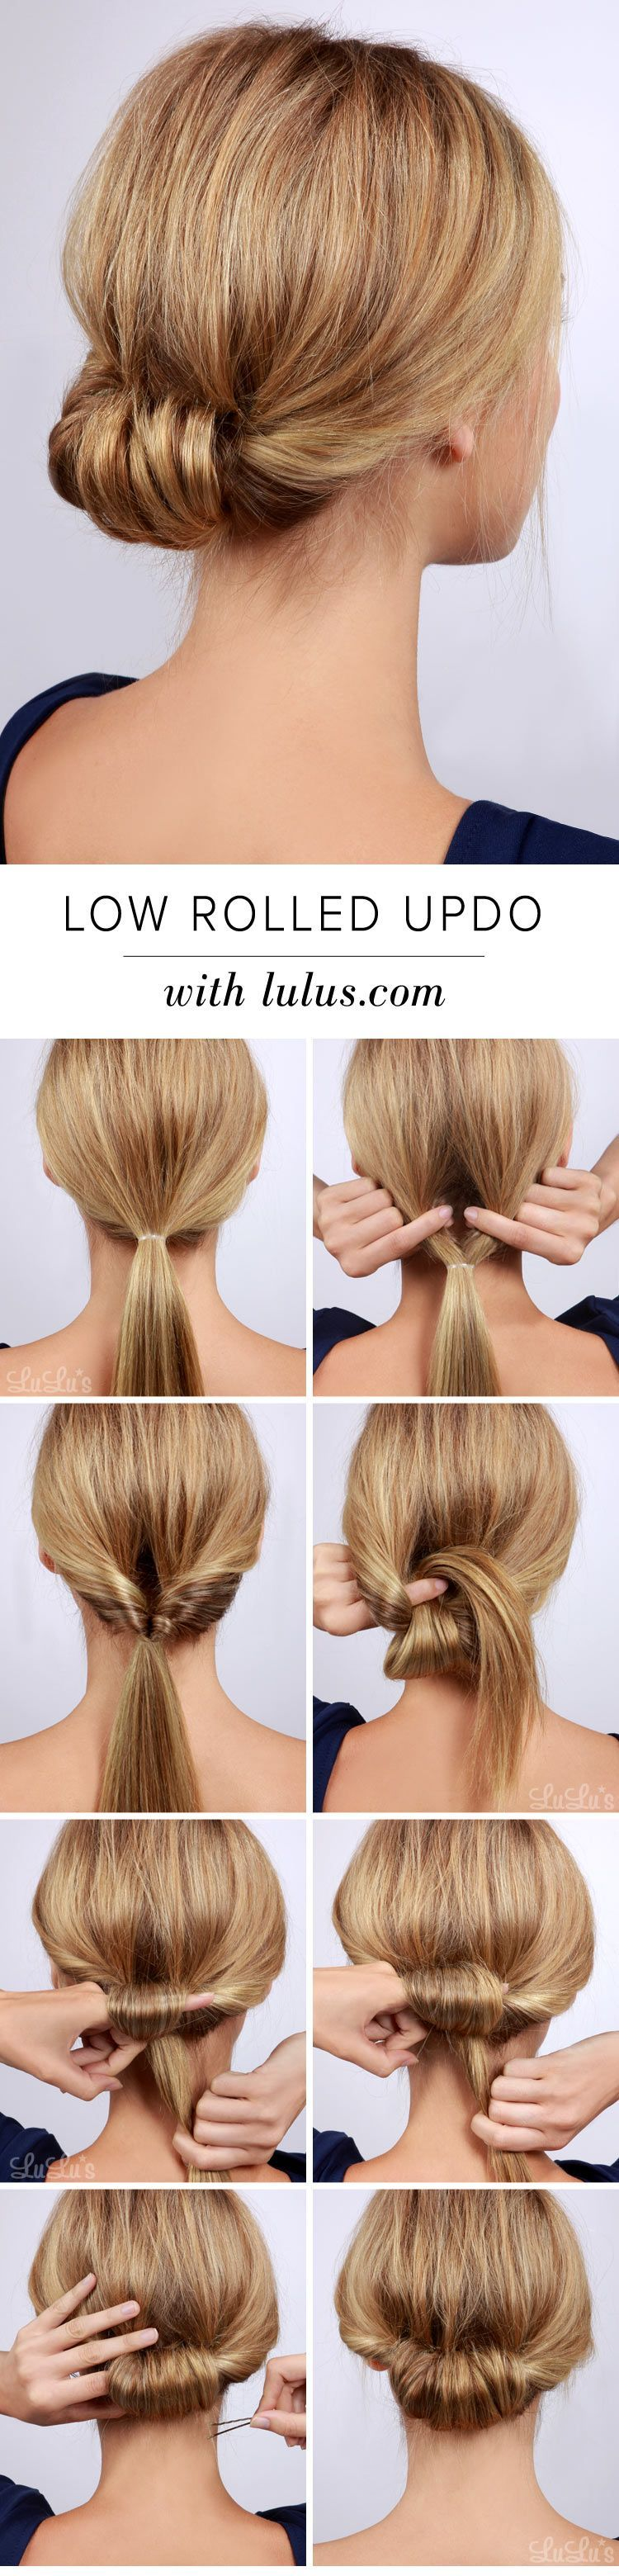 Lulus howto low rolled updo hair tutorial low rolled updo updo